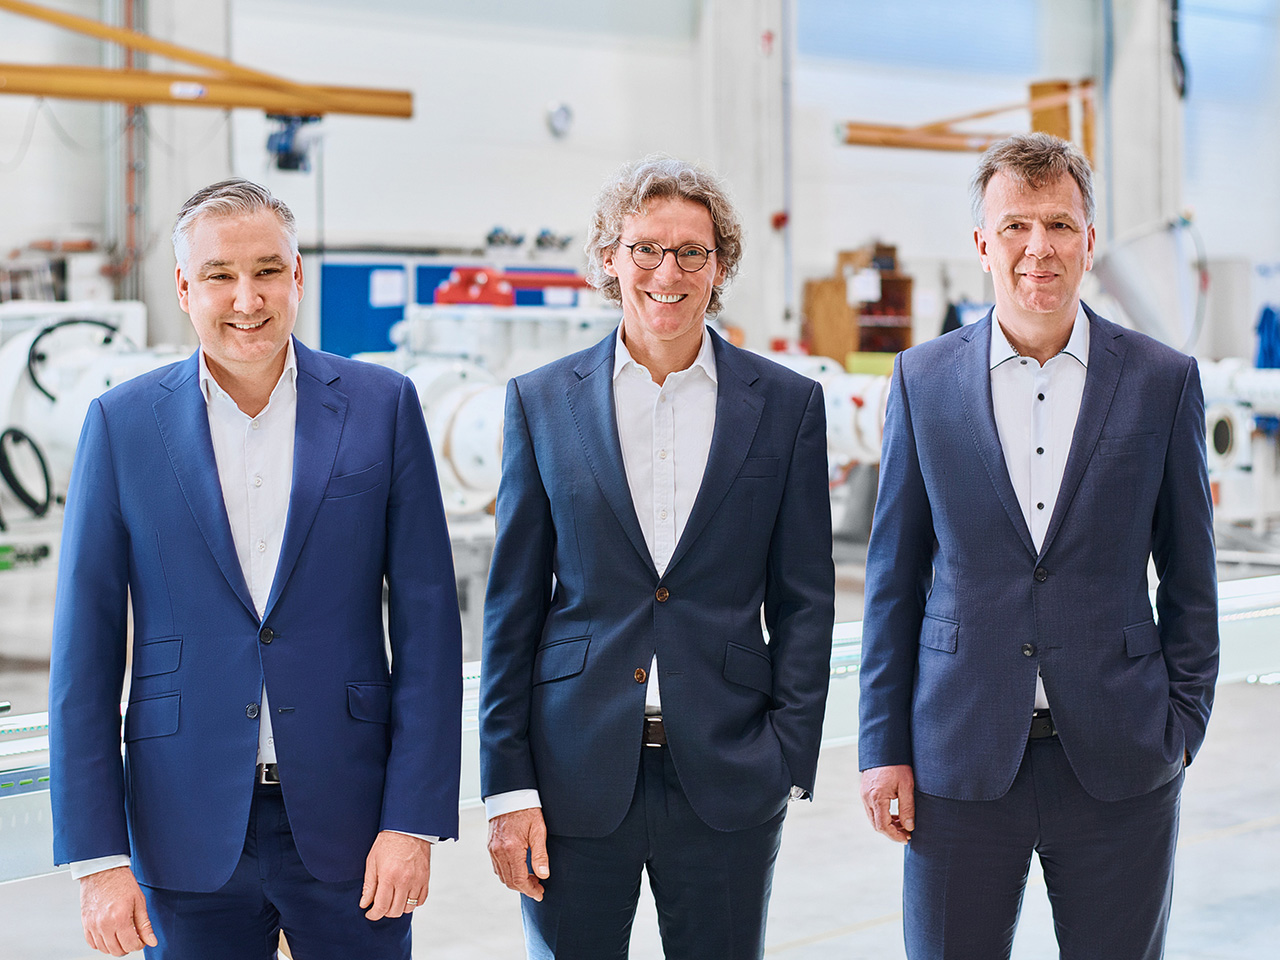 The new Troester Management Board (f.l.t.r.):  Thomas Holzer, Dr. Peter Schmidt (Managing Partner) and Bernd Pielsticker (Source: Troester)